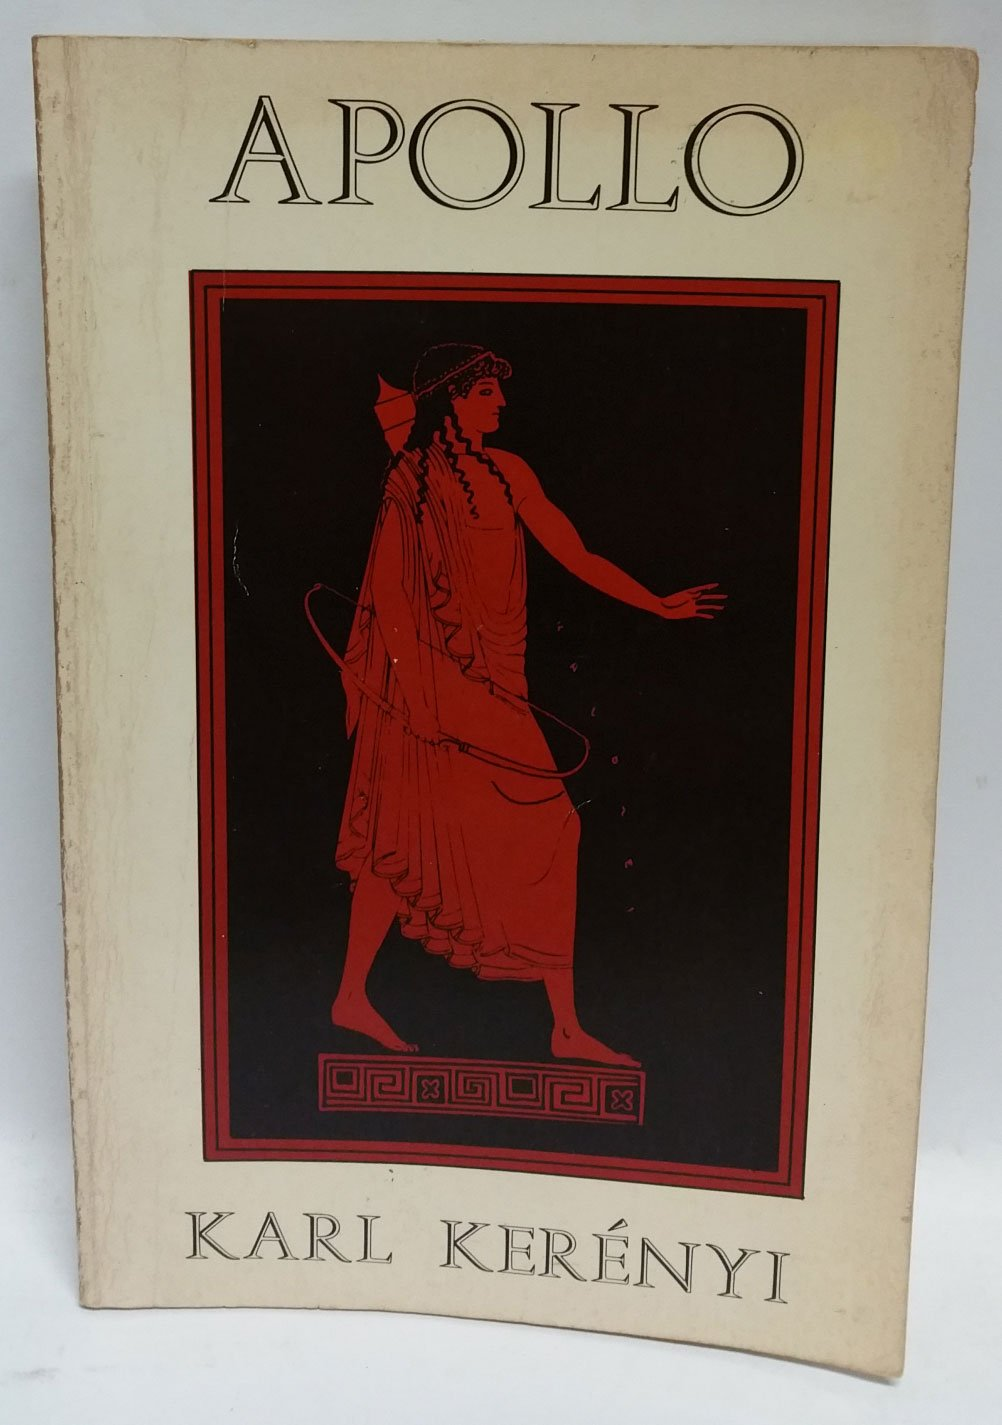 Apollo: The Wind, the Spirit, and the God : Four Studies (Dunquin Series) (English and German Edition), Kerenyi, Karl